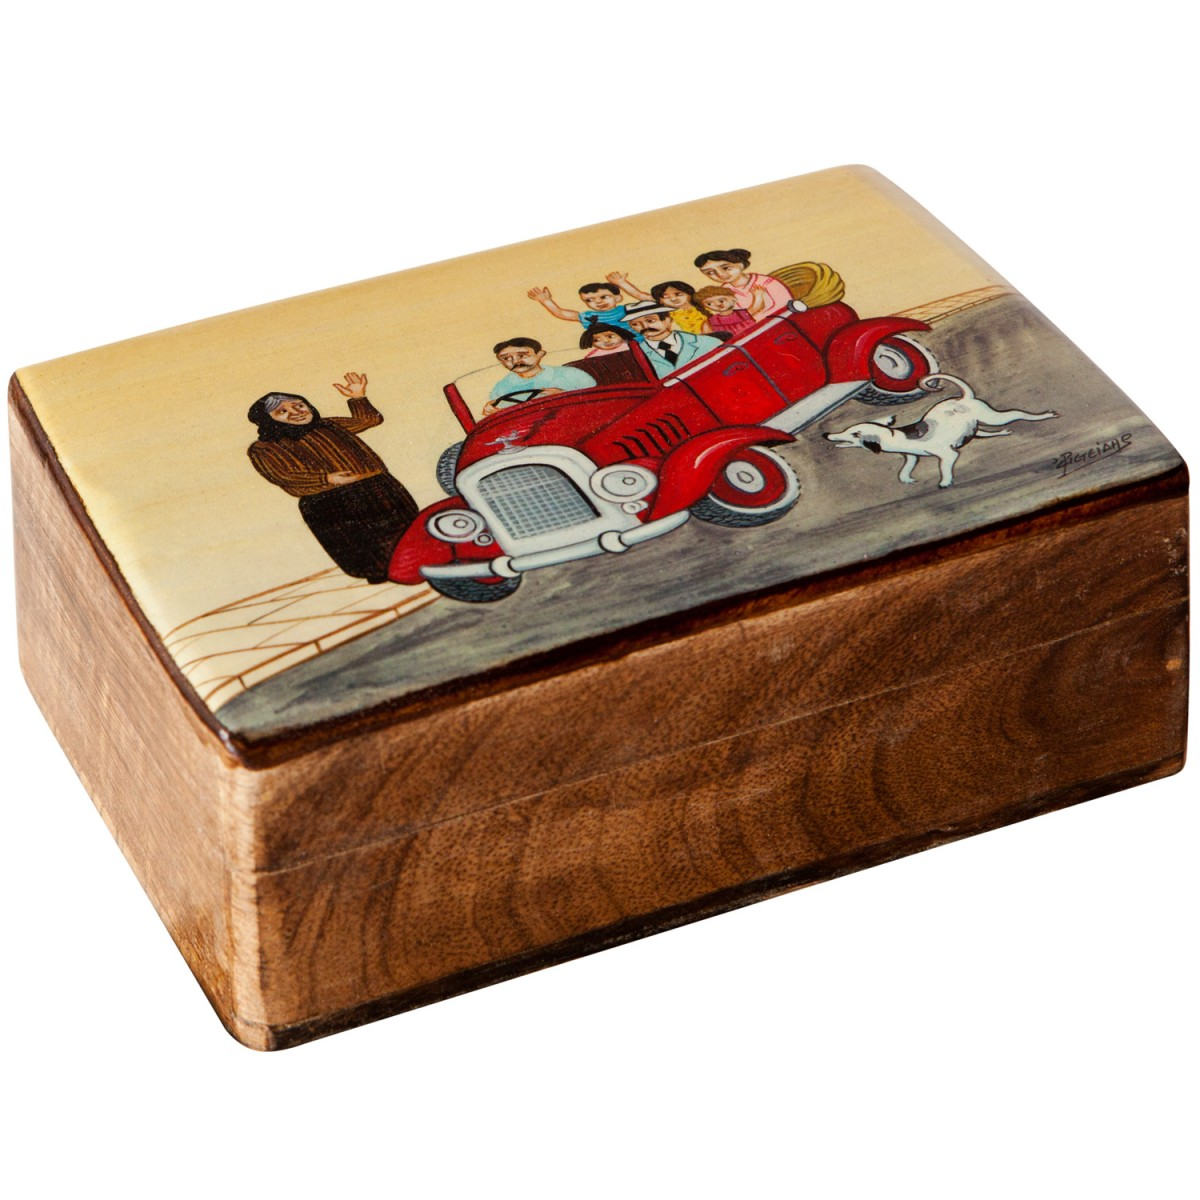 Decorative_Wooden_Box-Family_Excursion-Greek_Alphabet_Book